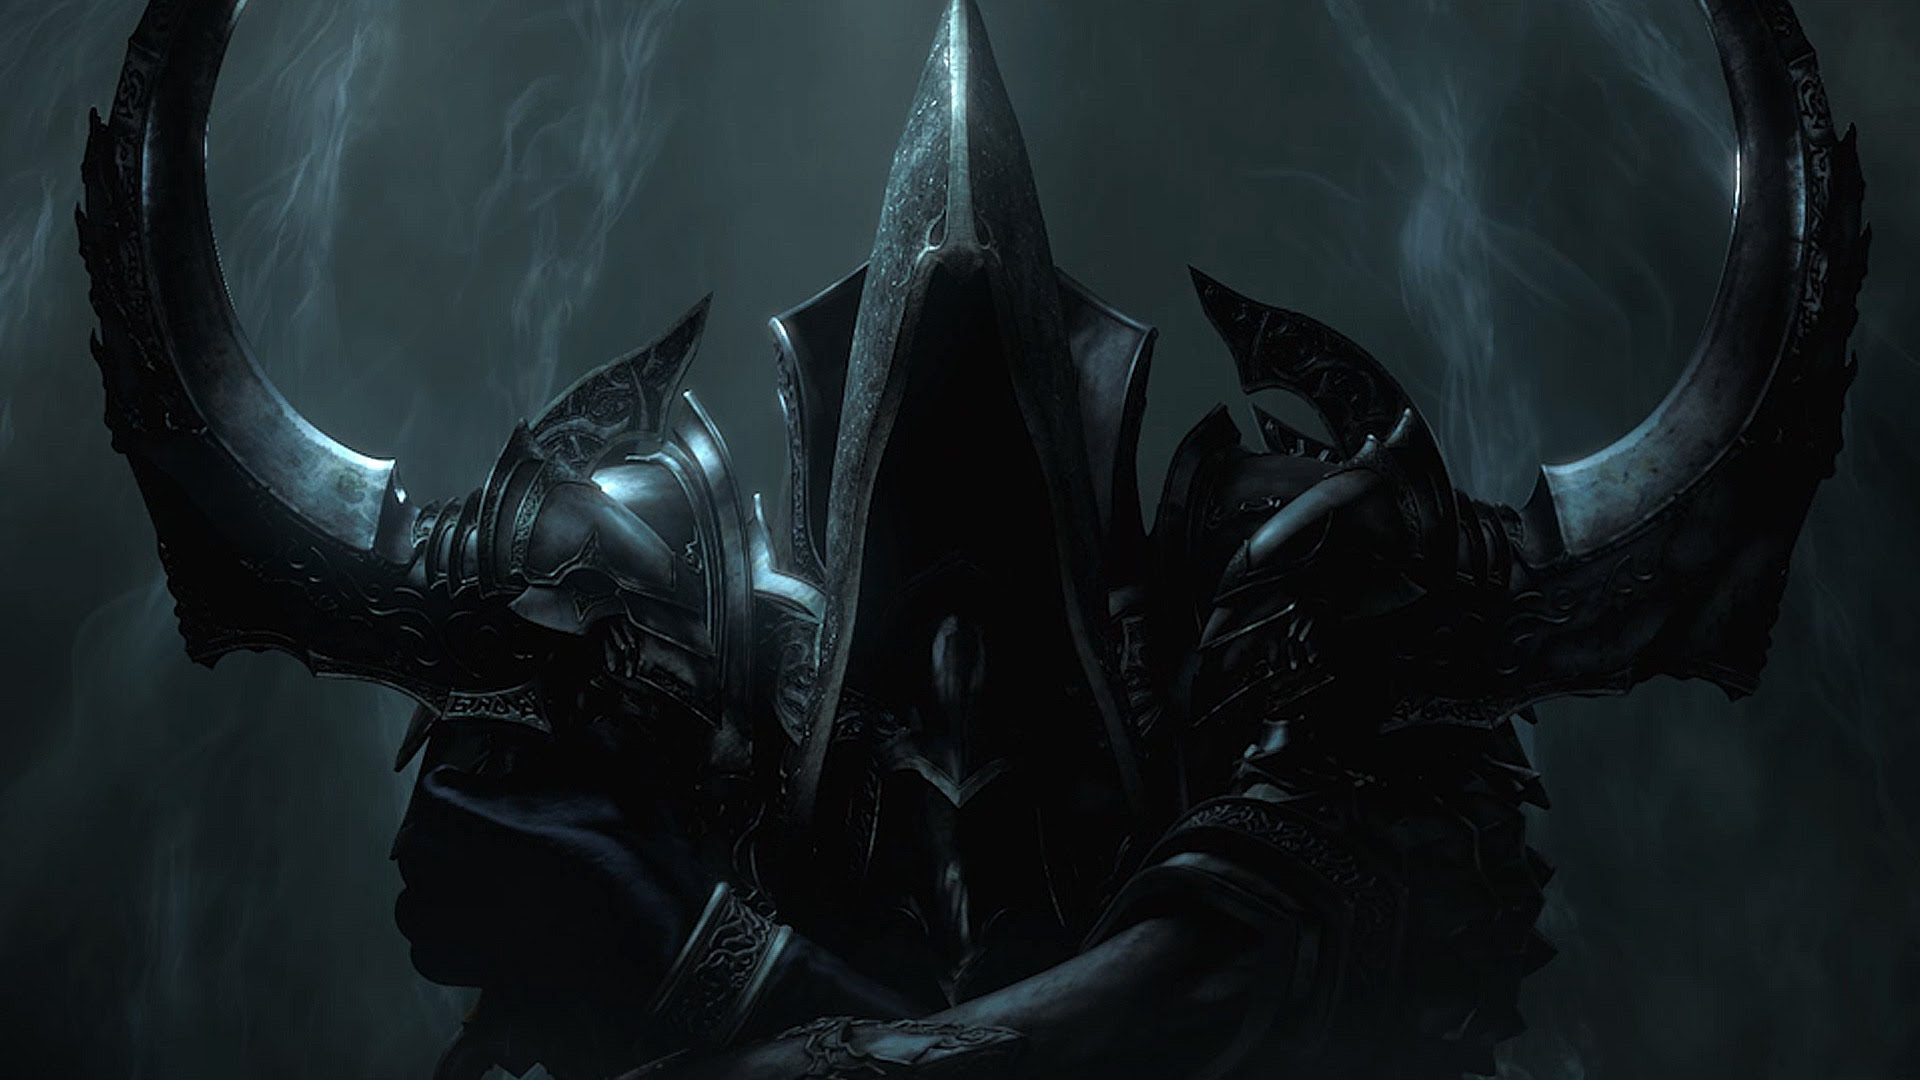 Diablo III: Reaper of Souls Malthael Cinematic Screenshot